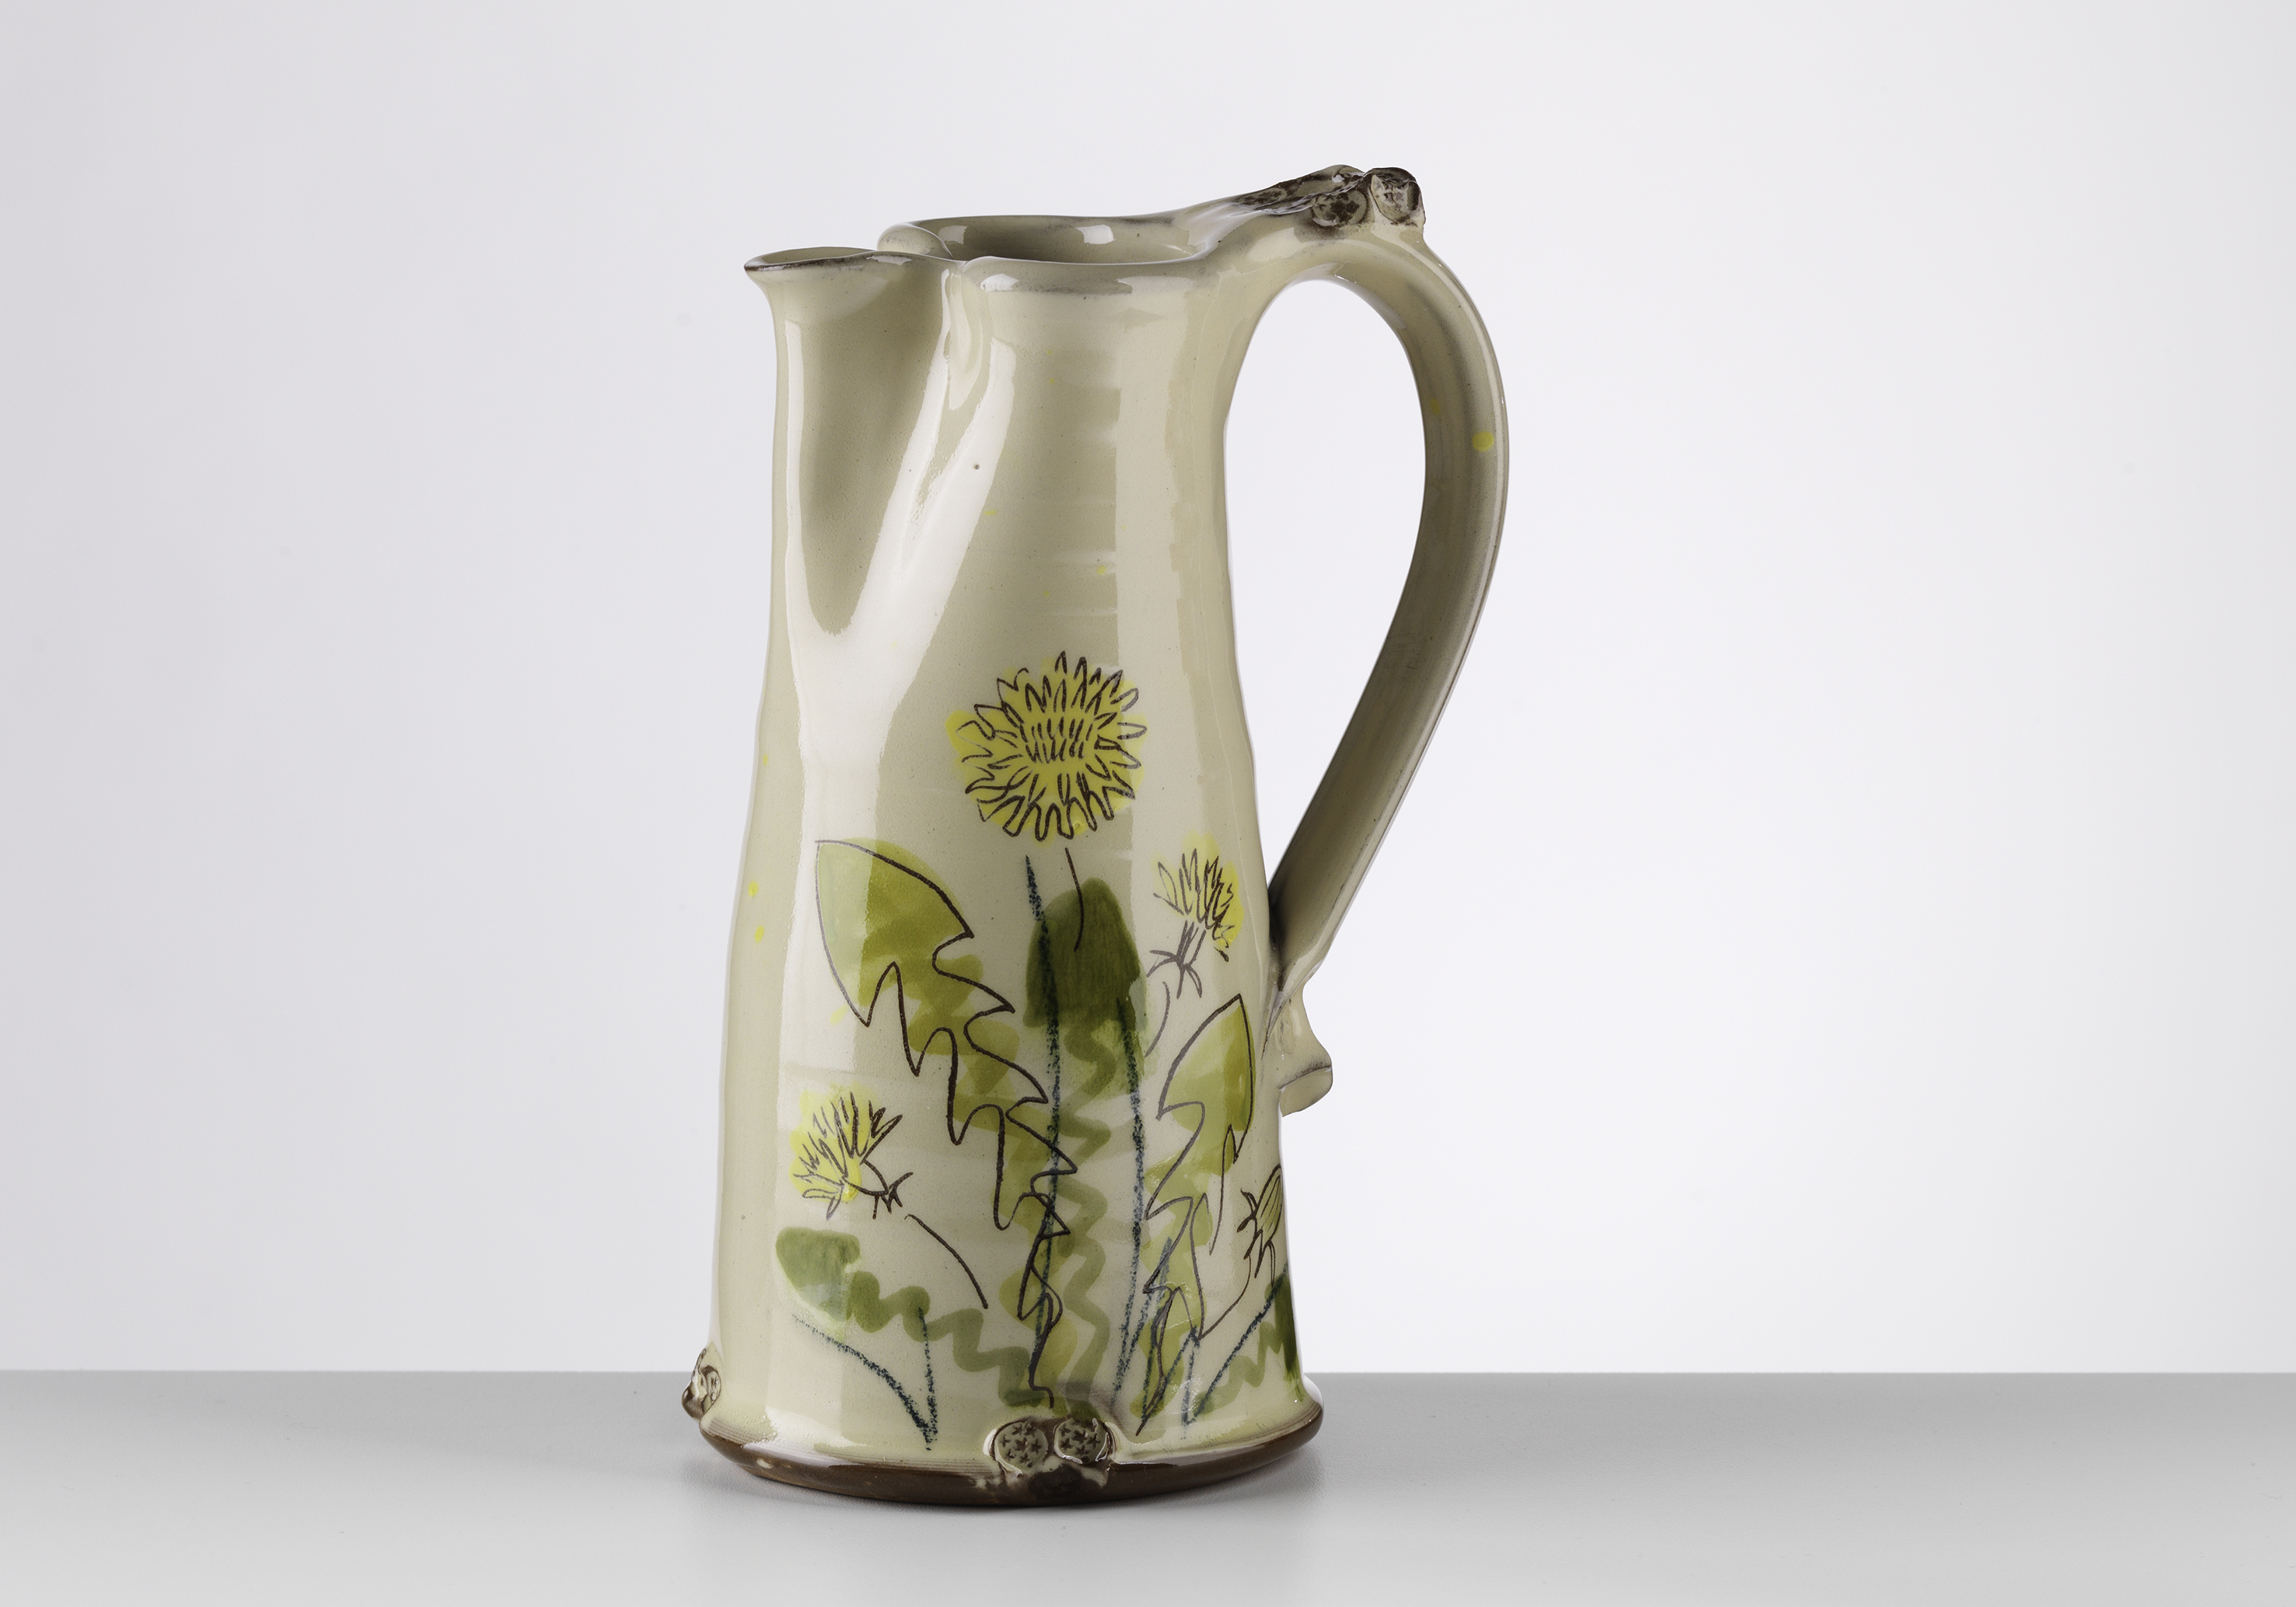 Dandelion jug, medium